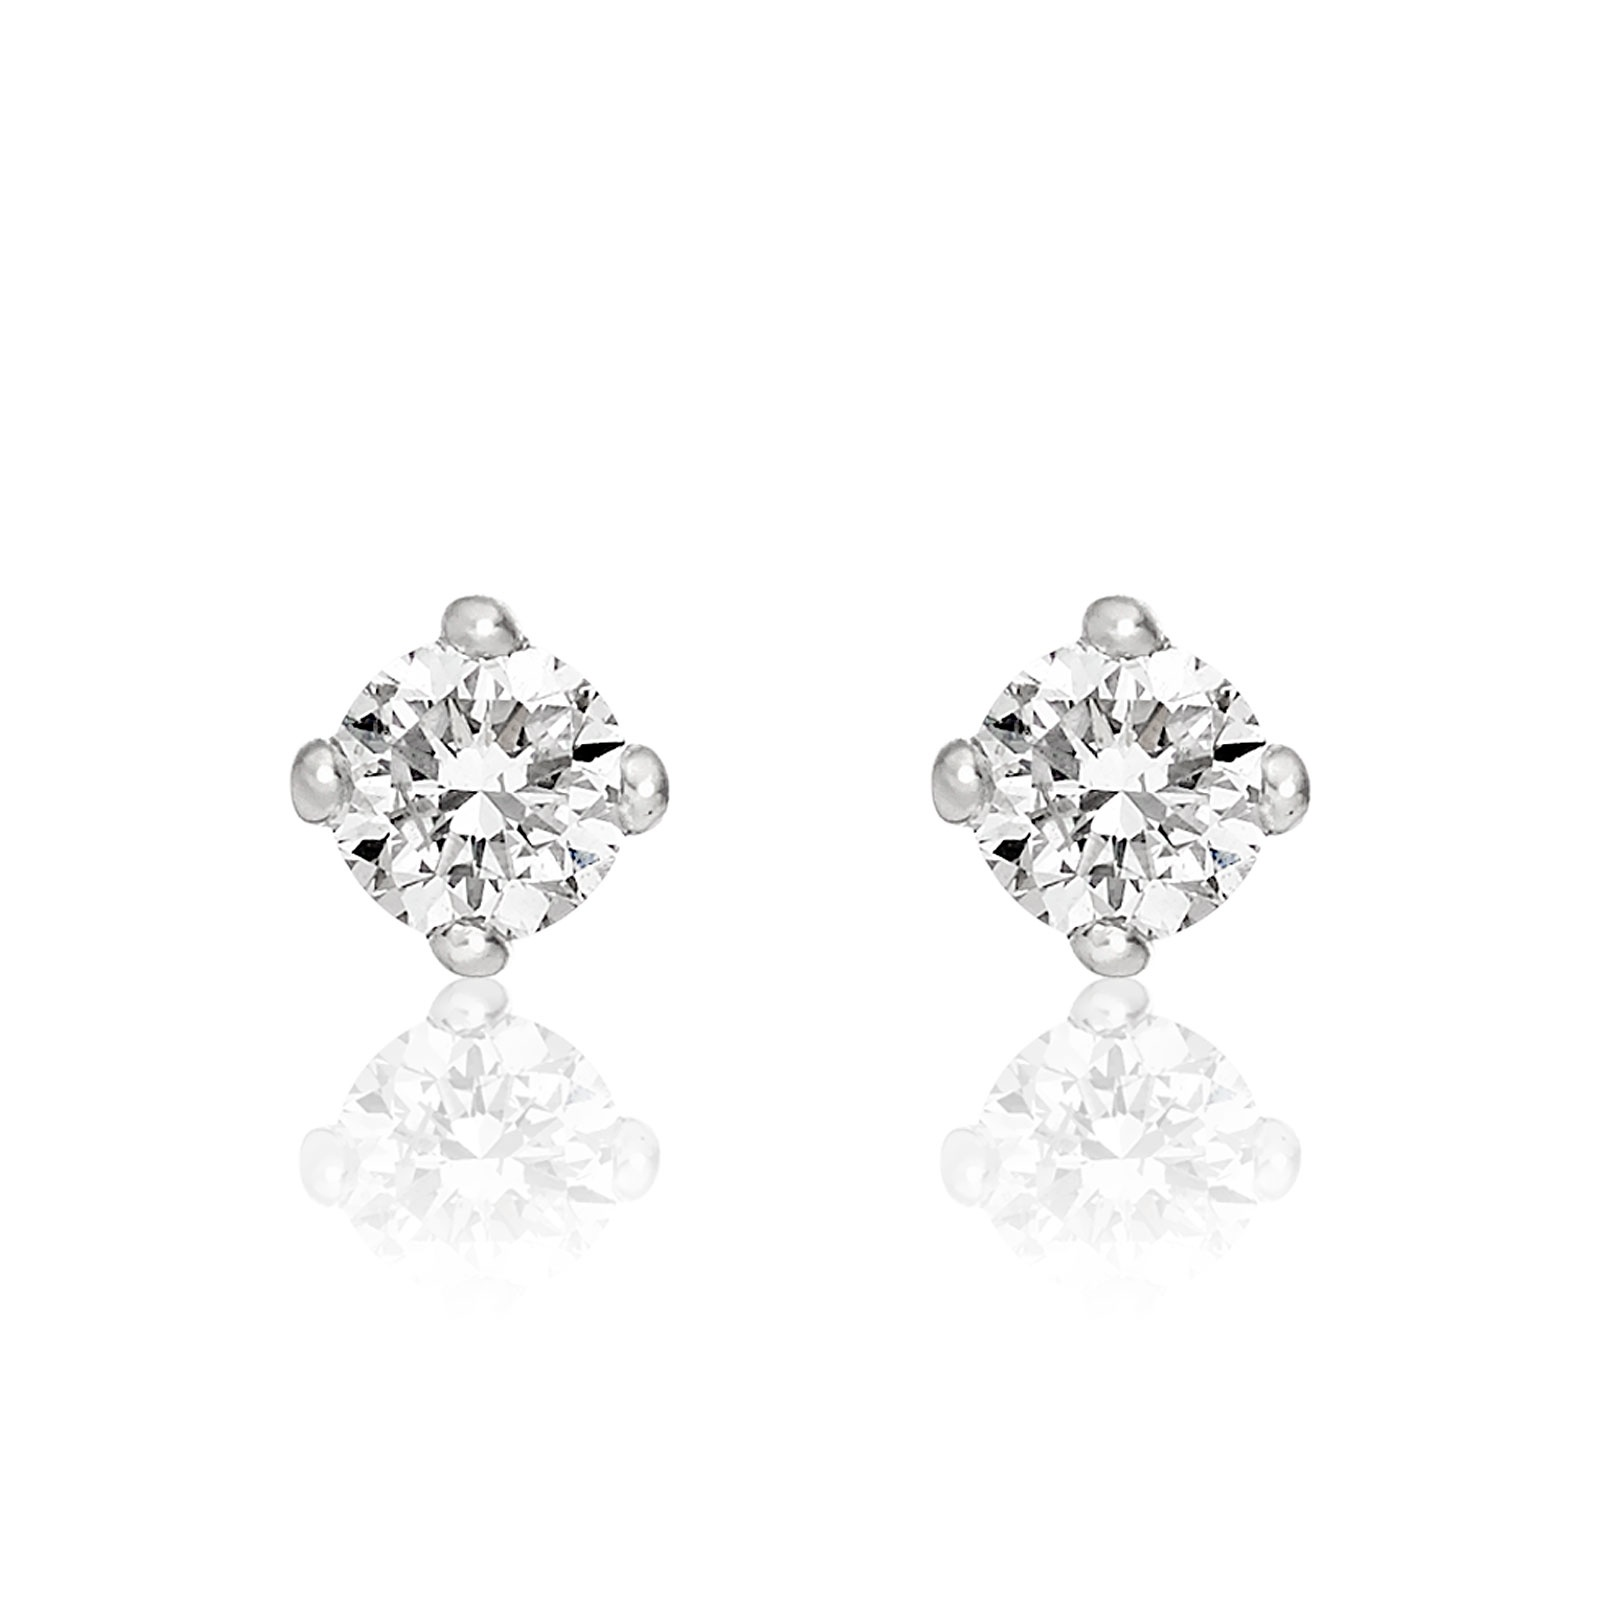 Diamond Studs in White Gold with Akoya Pearls-AEWRWG0469-1